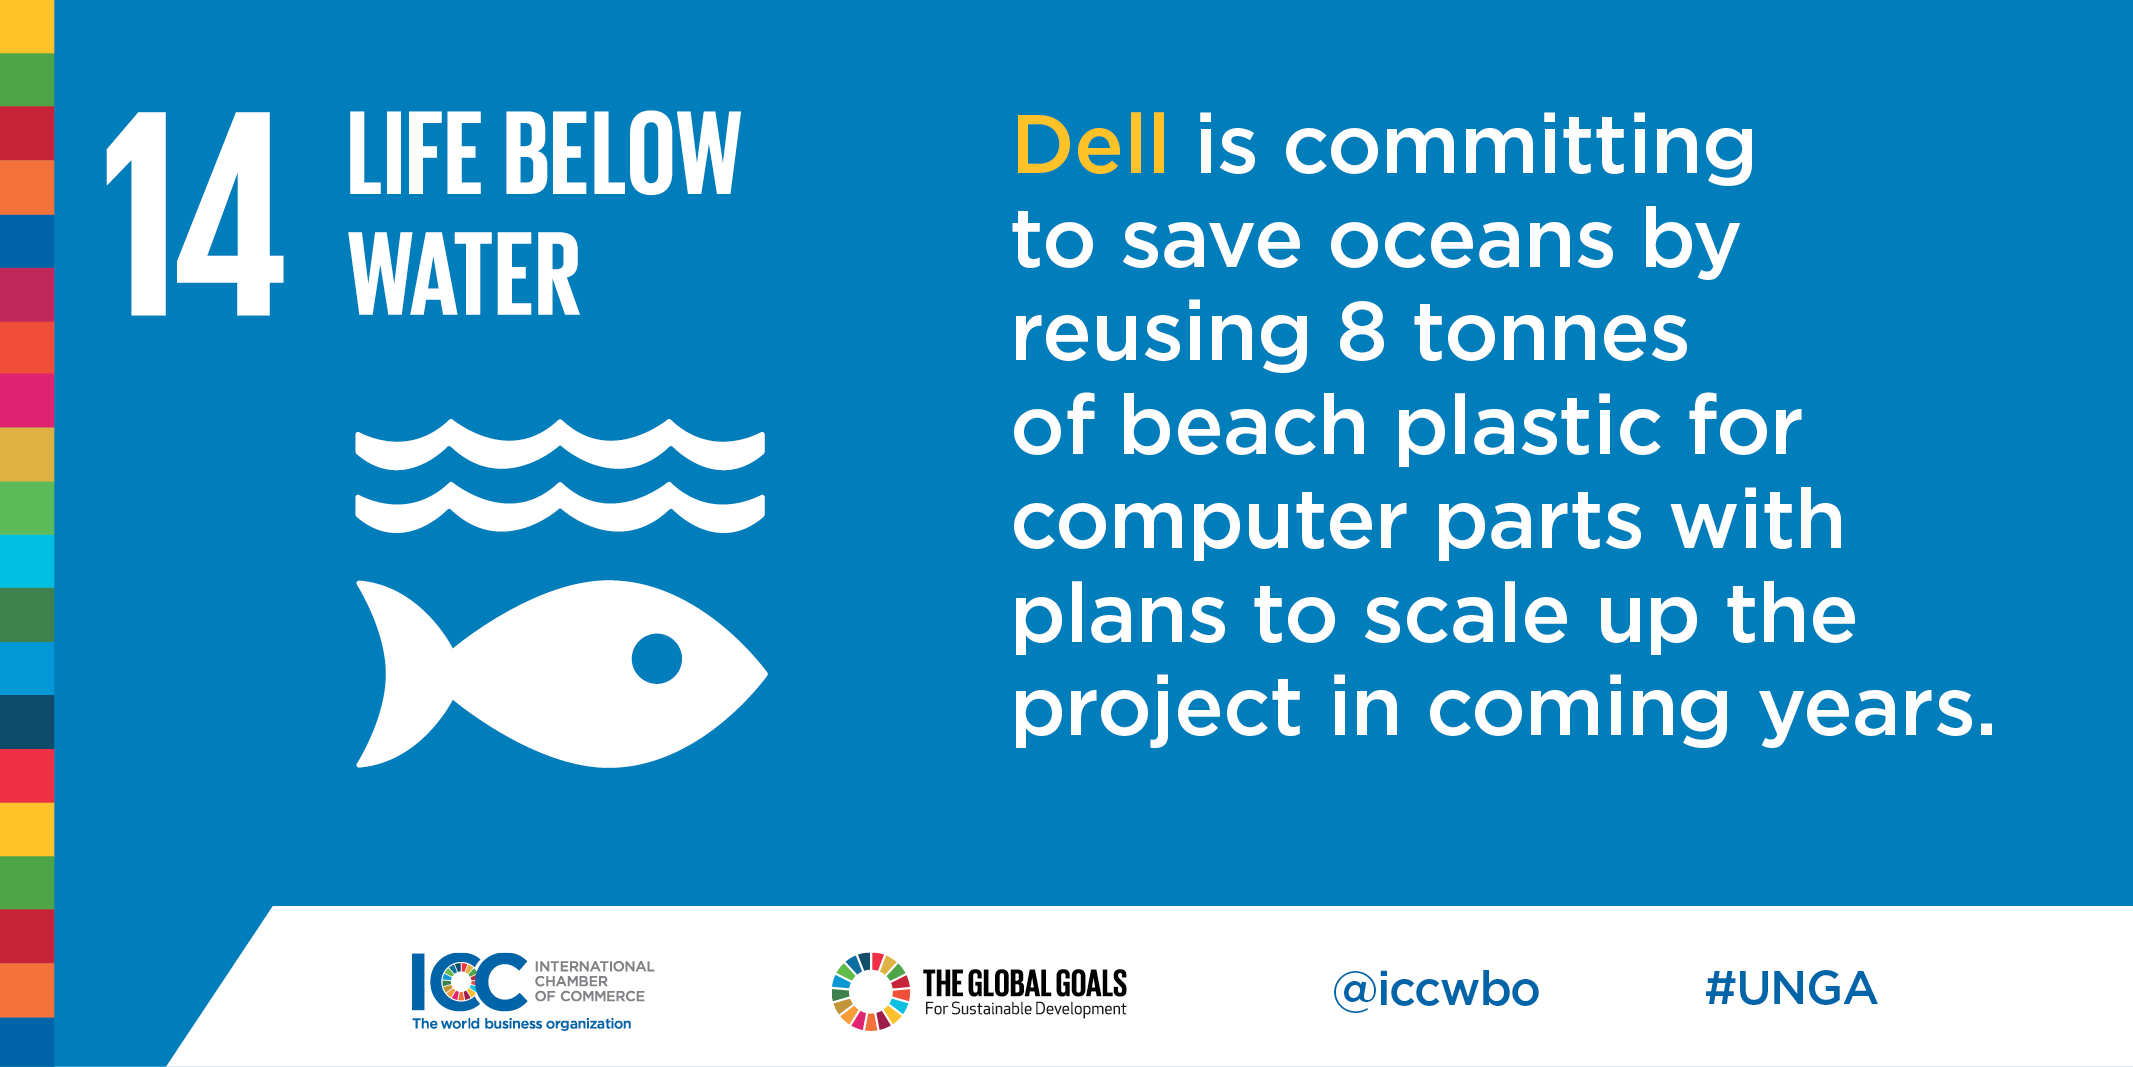 ICC Business Commits Plastic Pollution Dell